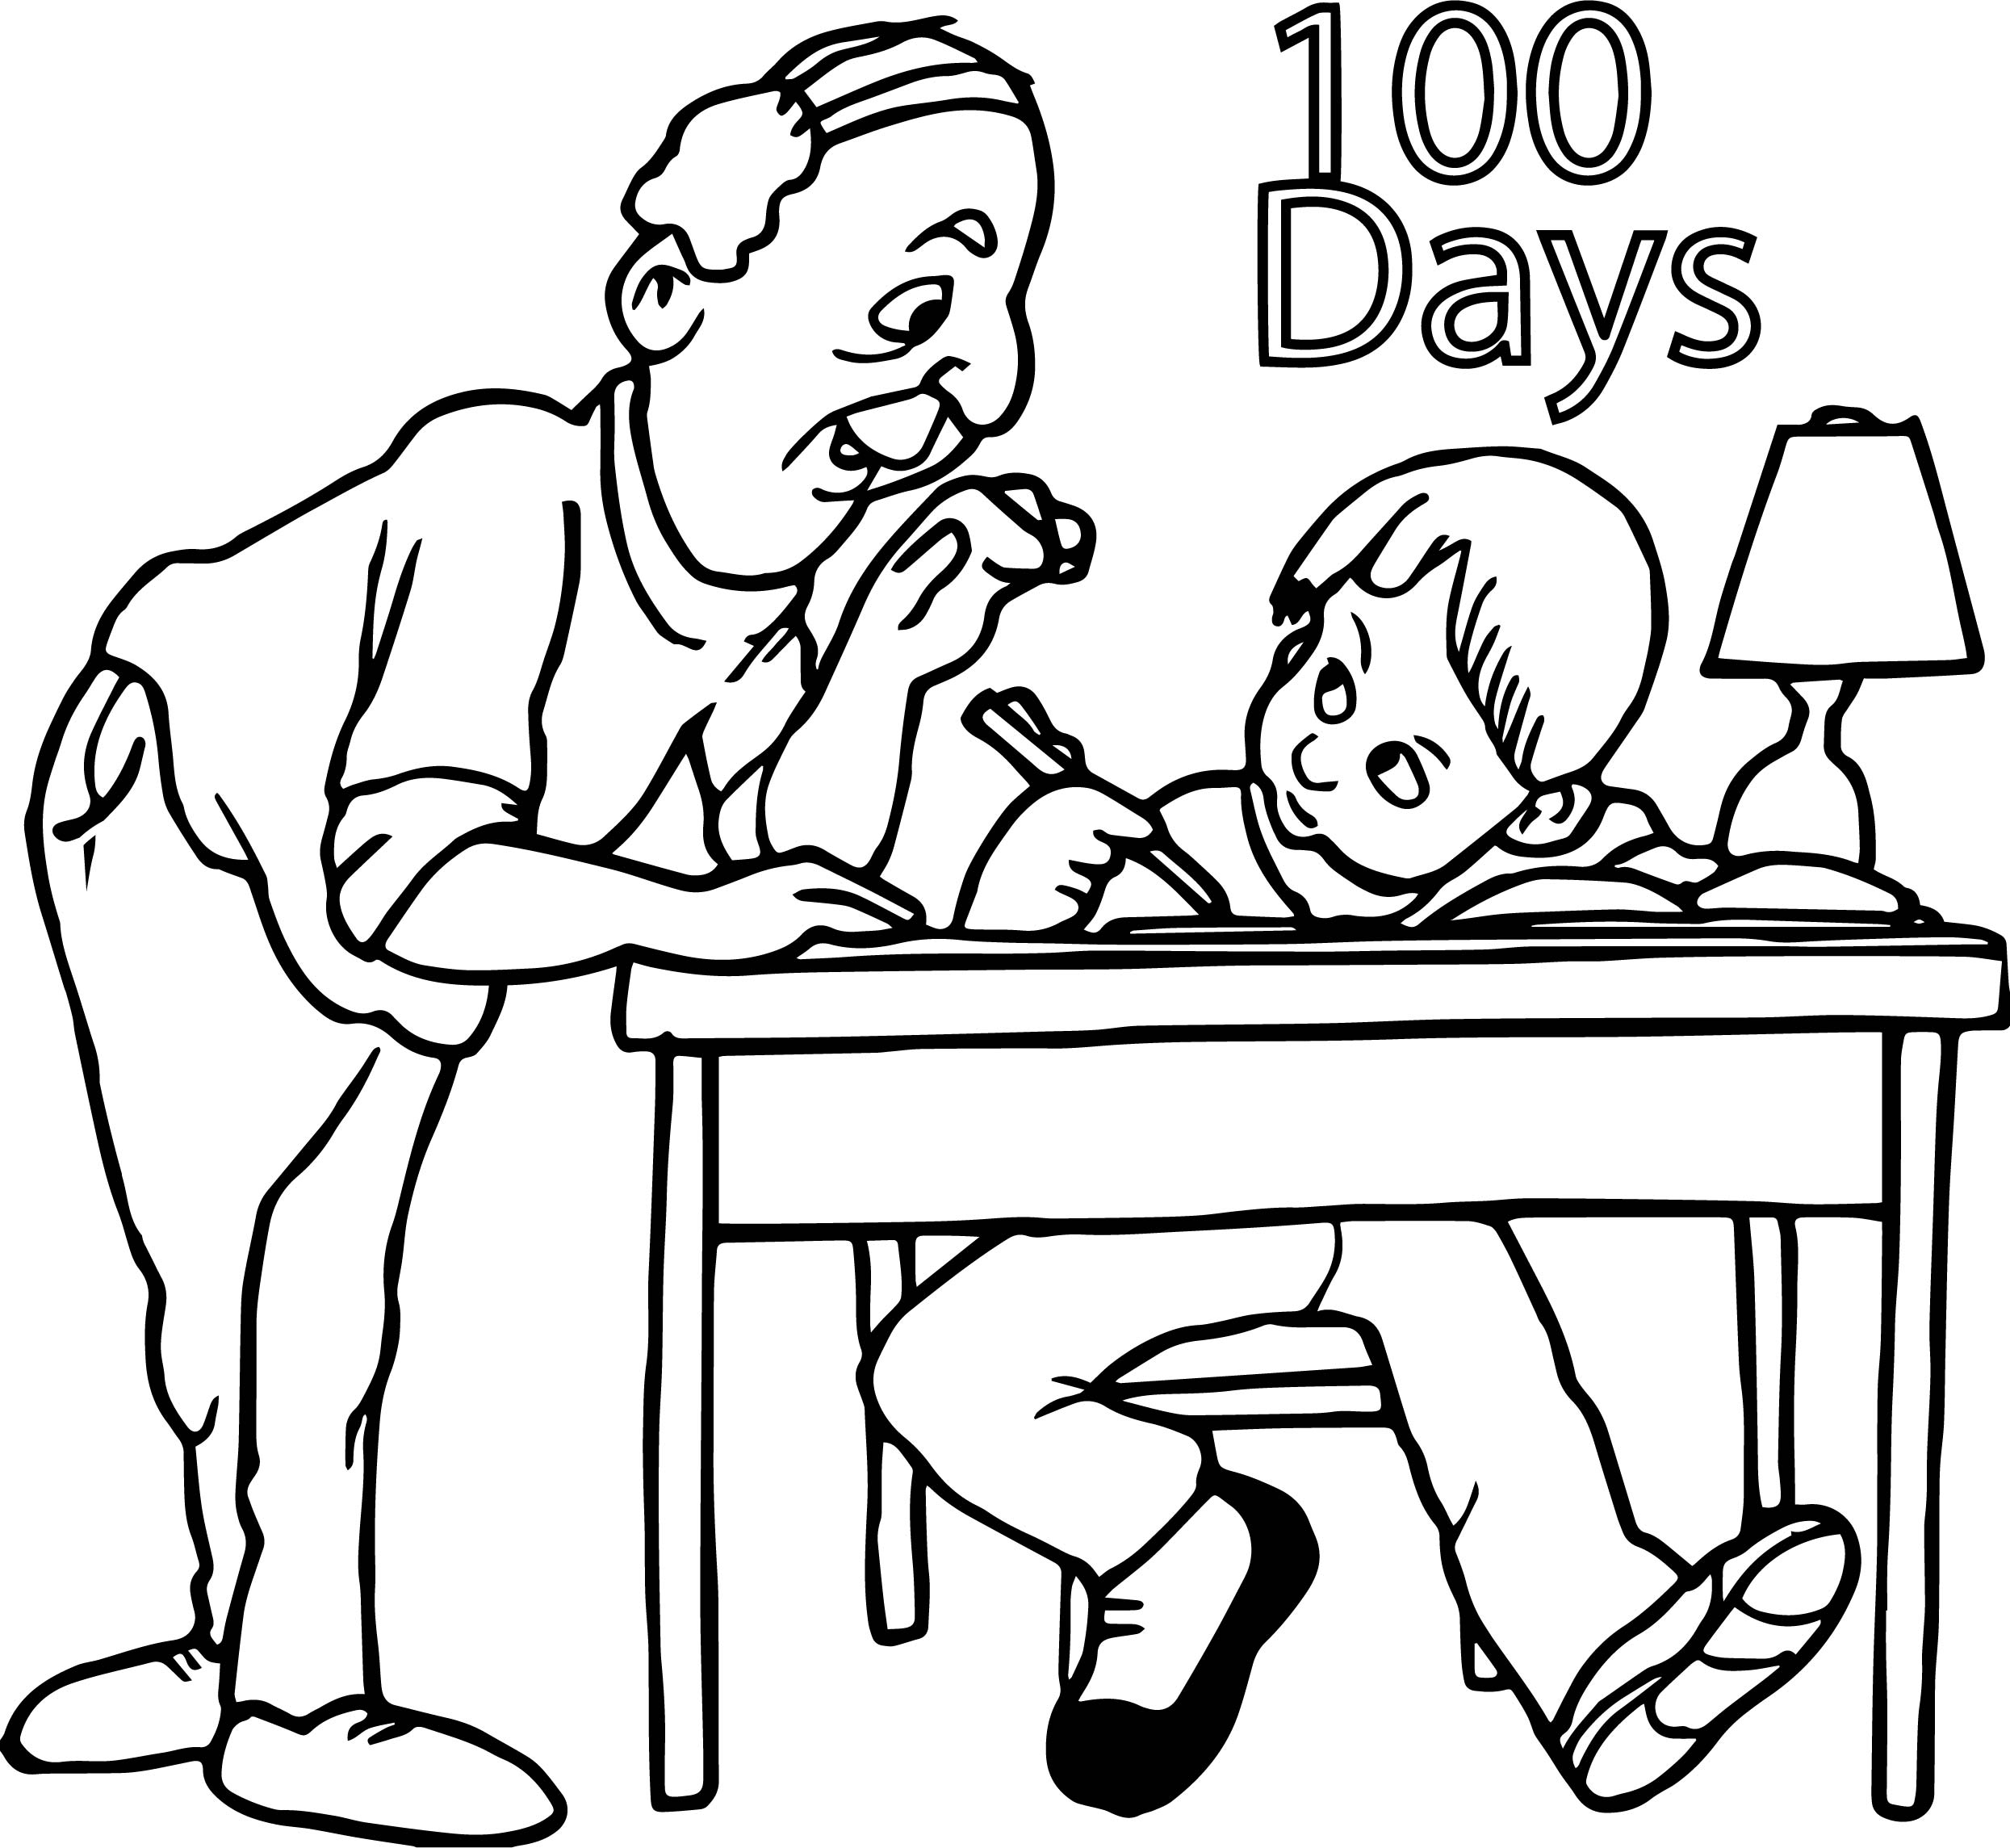 school homework coloring pages | Homework 100 Days Coloring Page | Wecoloringpage.com